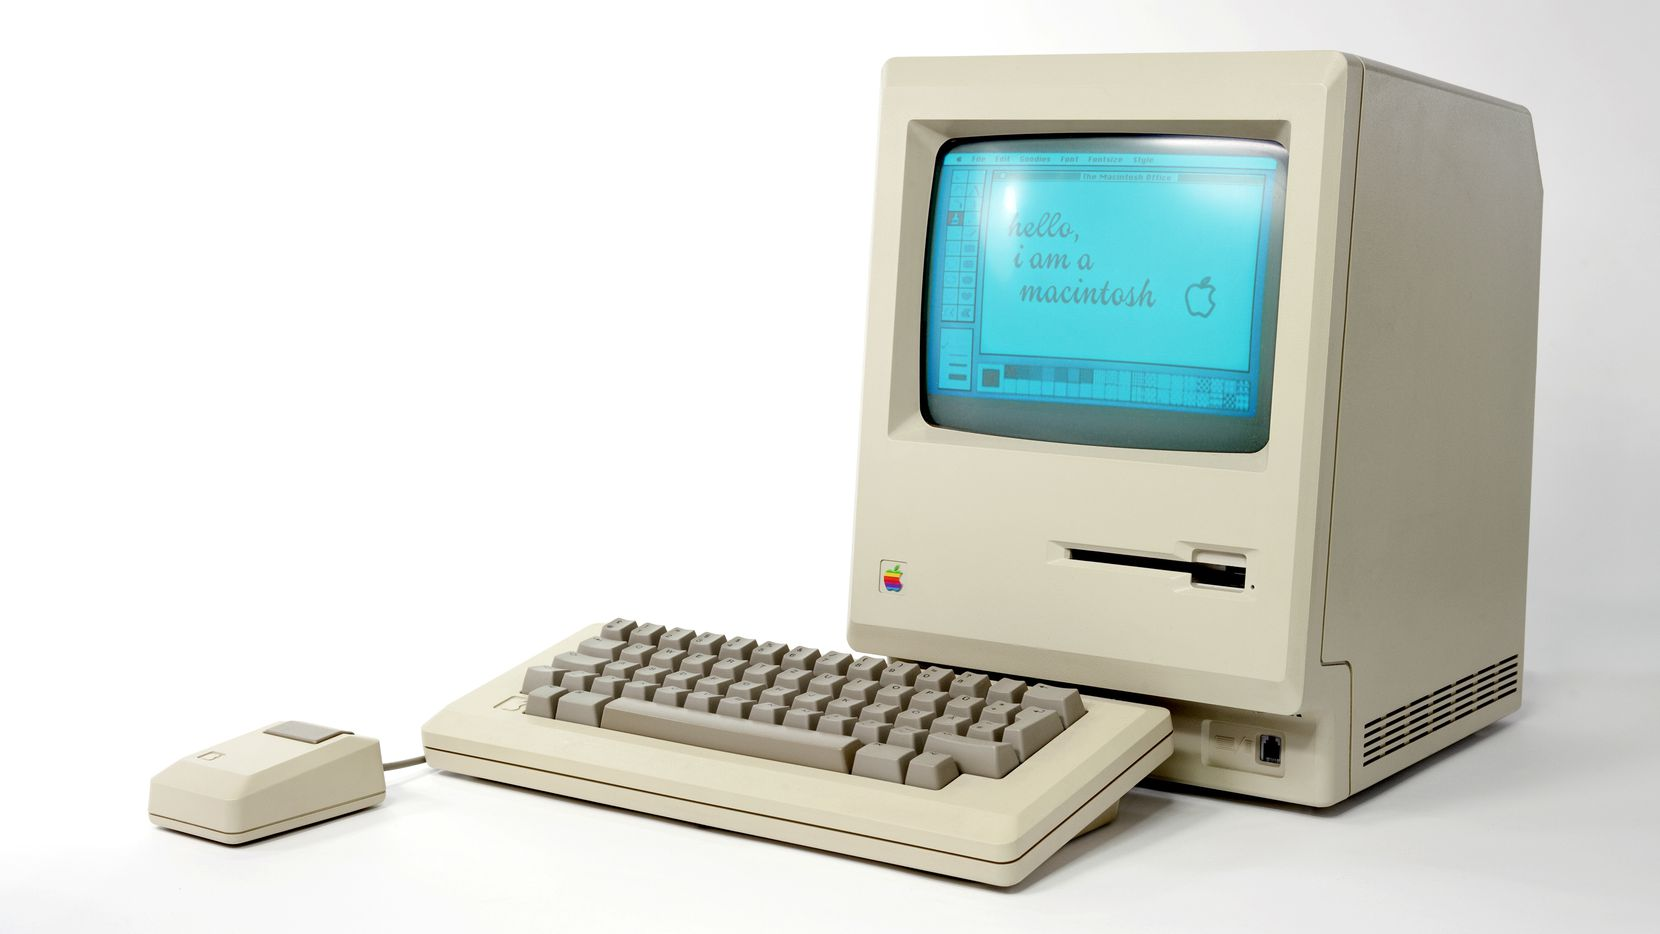 Flashback: Apple Computer's Macintosh took on IBM armed with